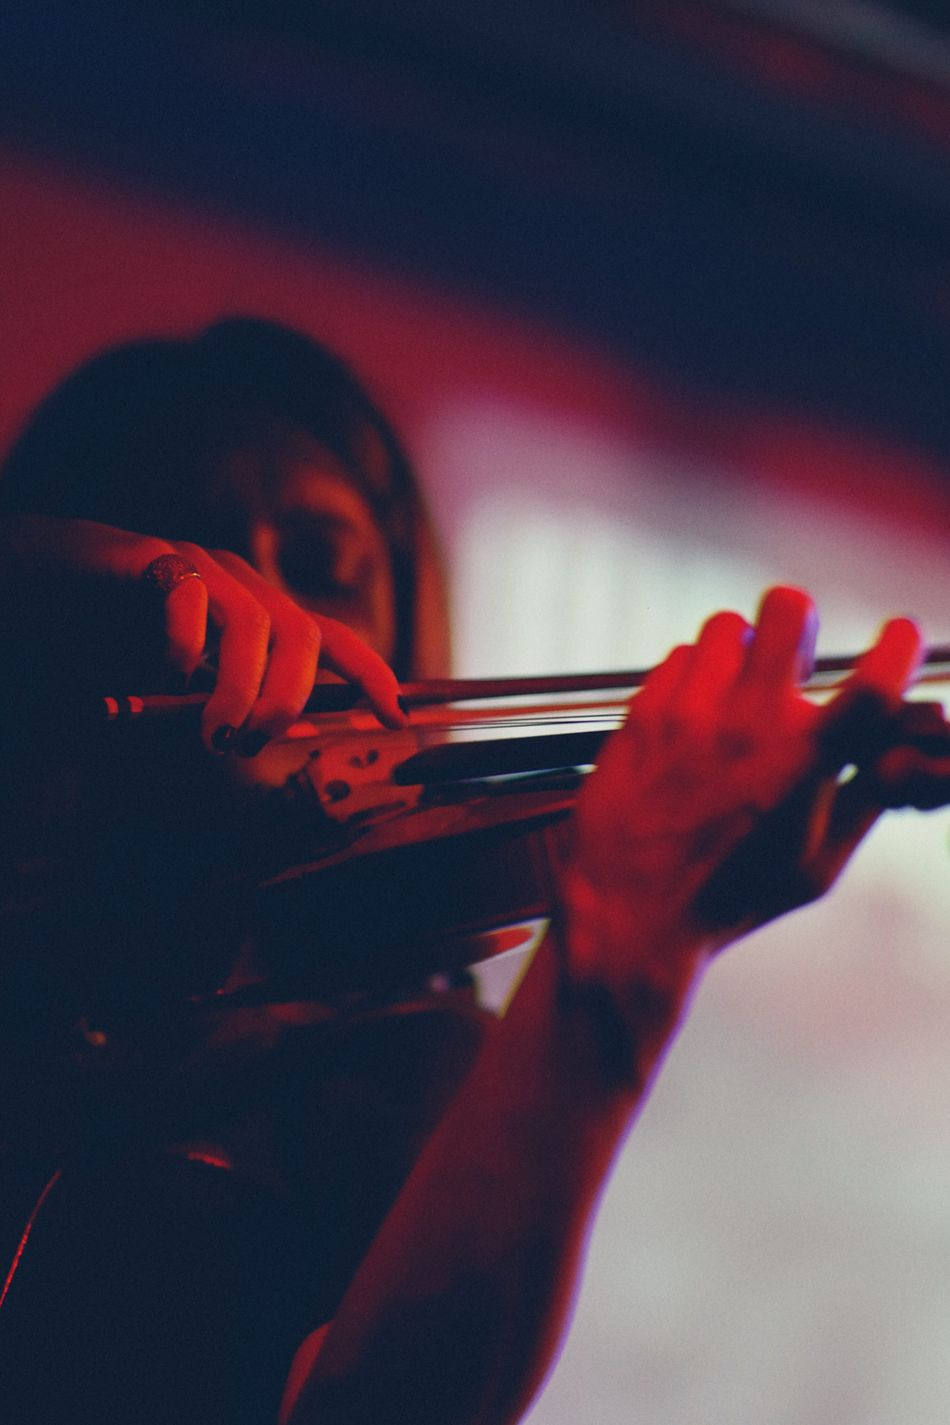 TCPM Music Musical Instrument Violin Playing Musician One Person Musical Instrument String Arts Culture And Entertainment Violinist Young Women Close-up EyeEm Best Shots EyeEm Masterclass Beautyisourduty One Woman Only Concert Blue